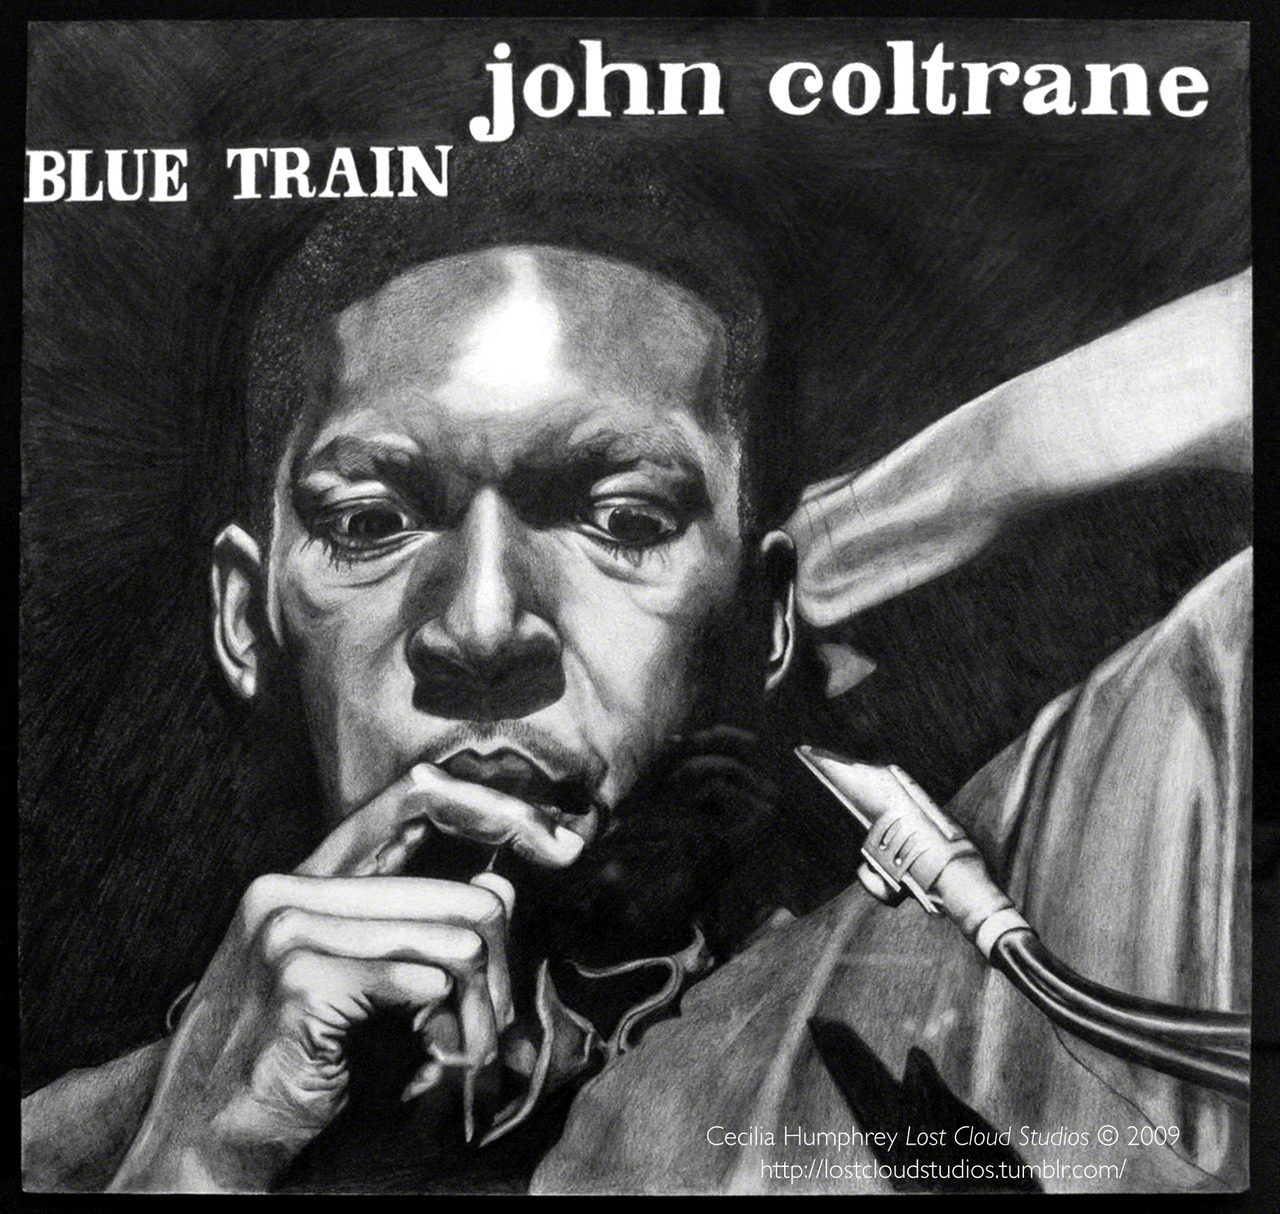 John Coltrane - Blue Train  (2009) Cecilia Humphrey. Graphite on Paper.